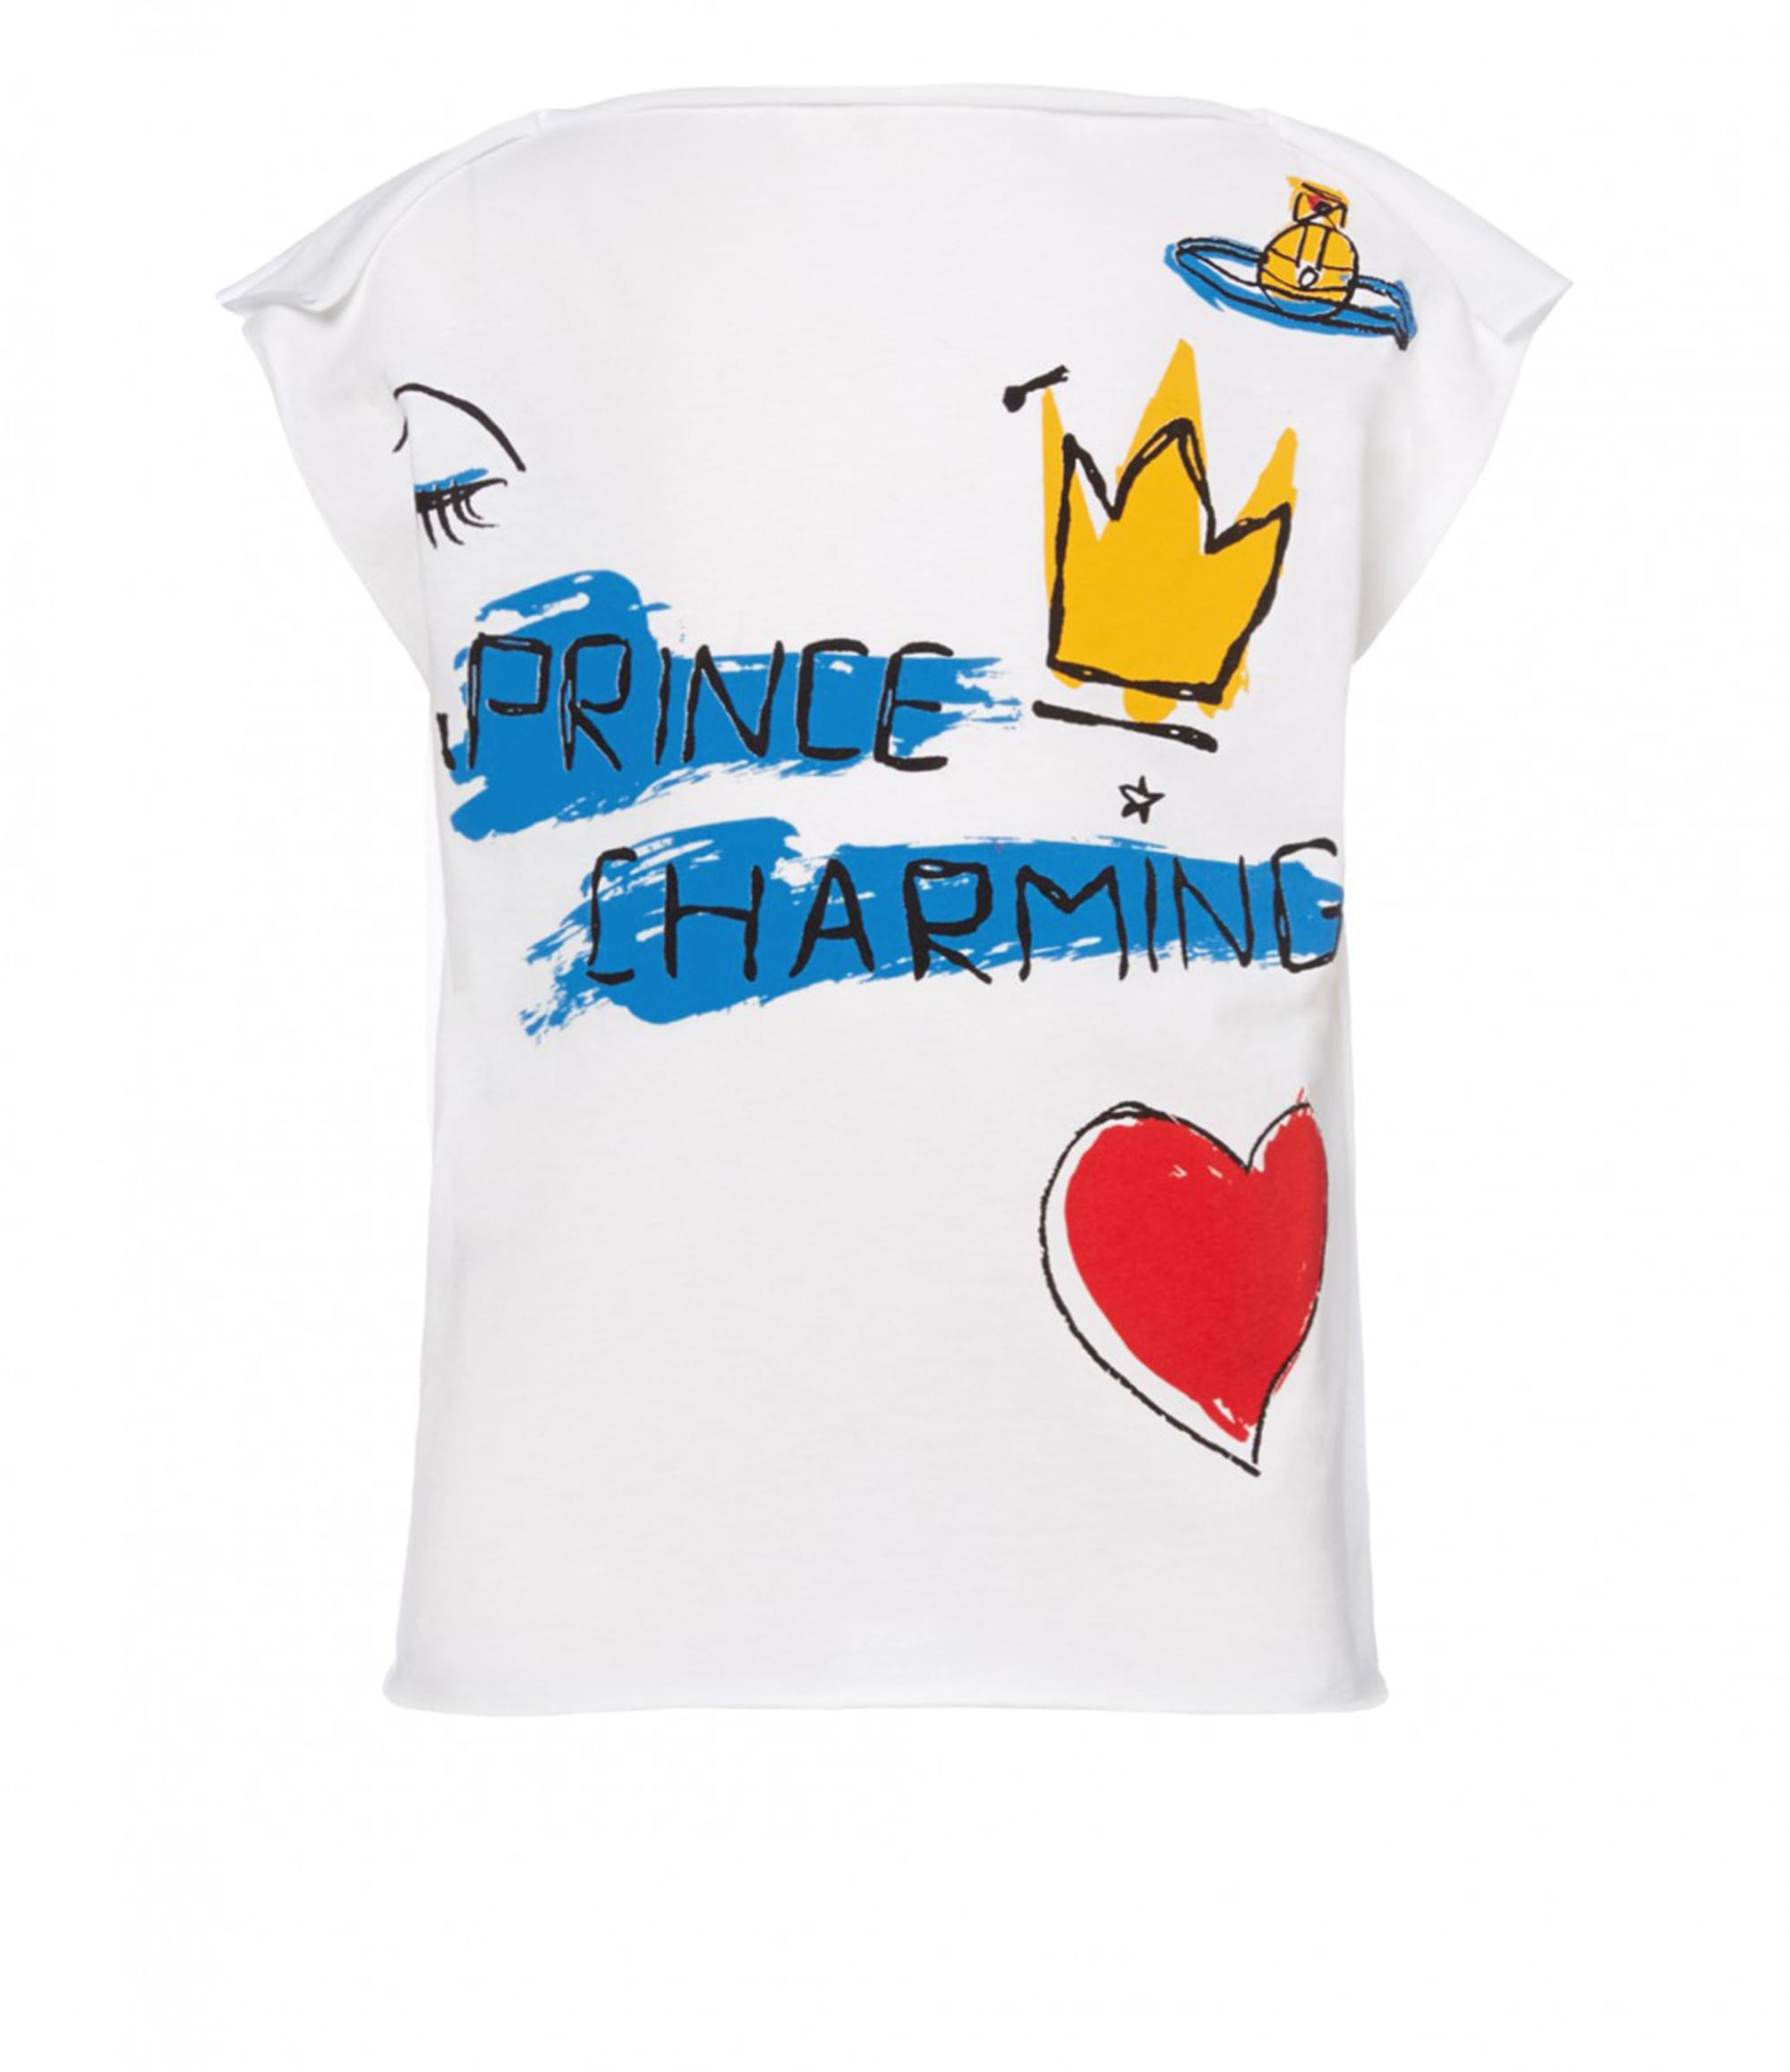 Vivienne Westwood Childs Square Prince Charming T-Shirt